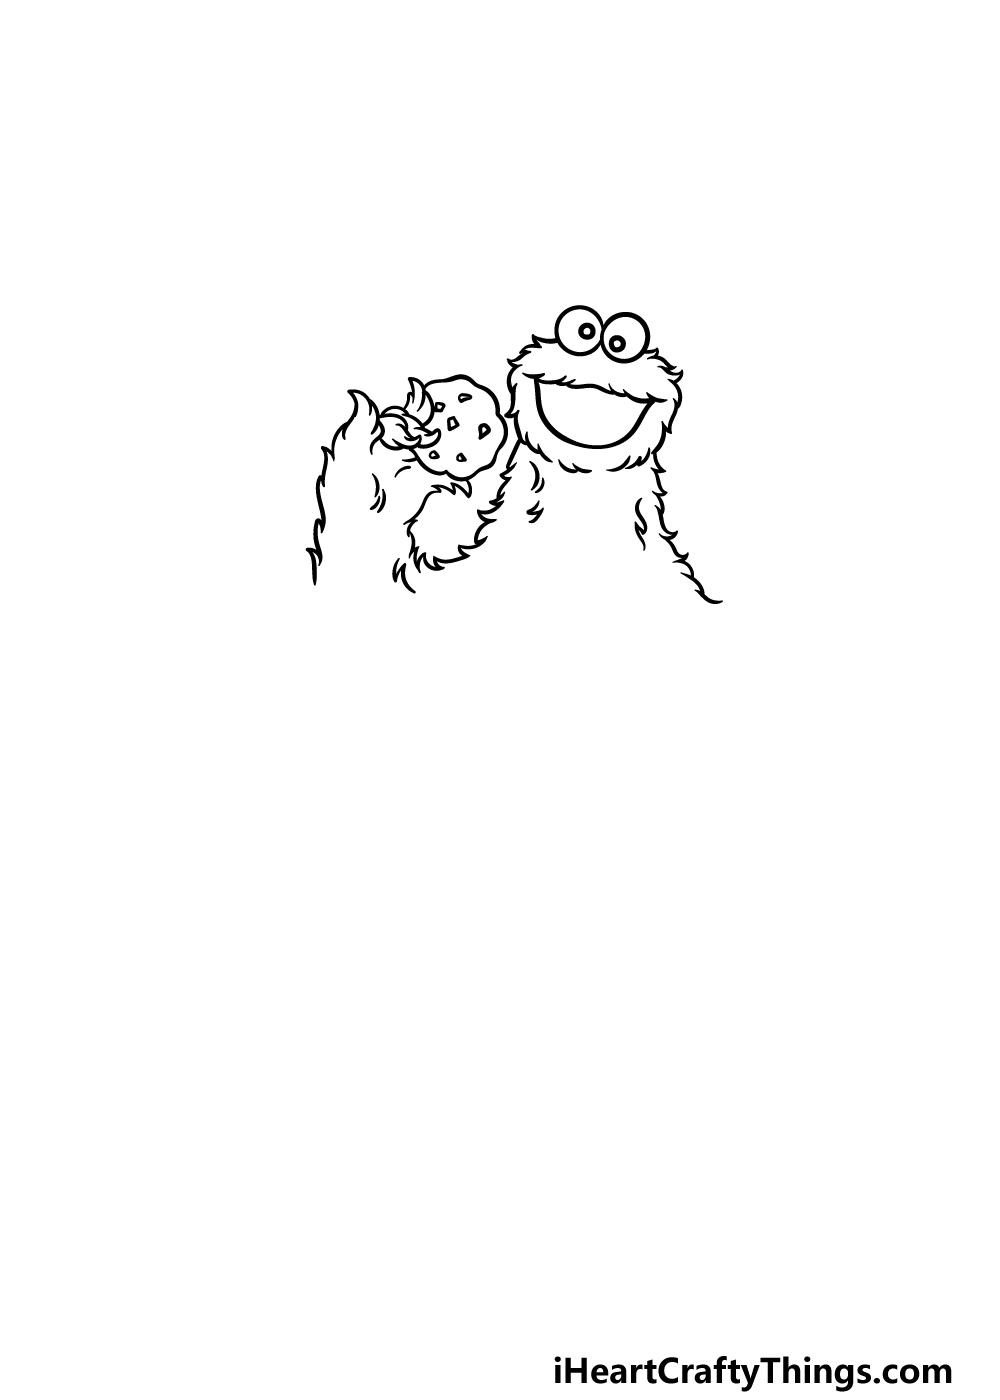 drawing a cookie monster step 2